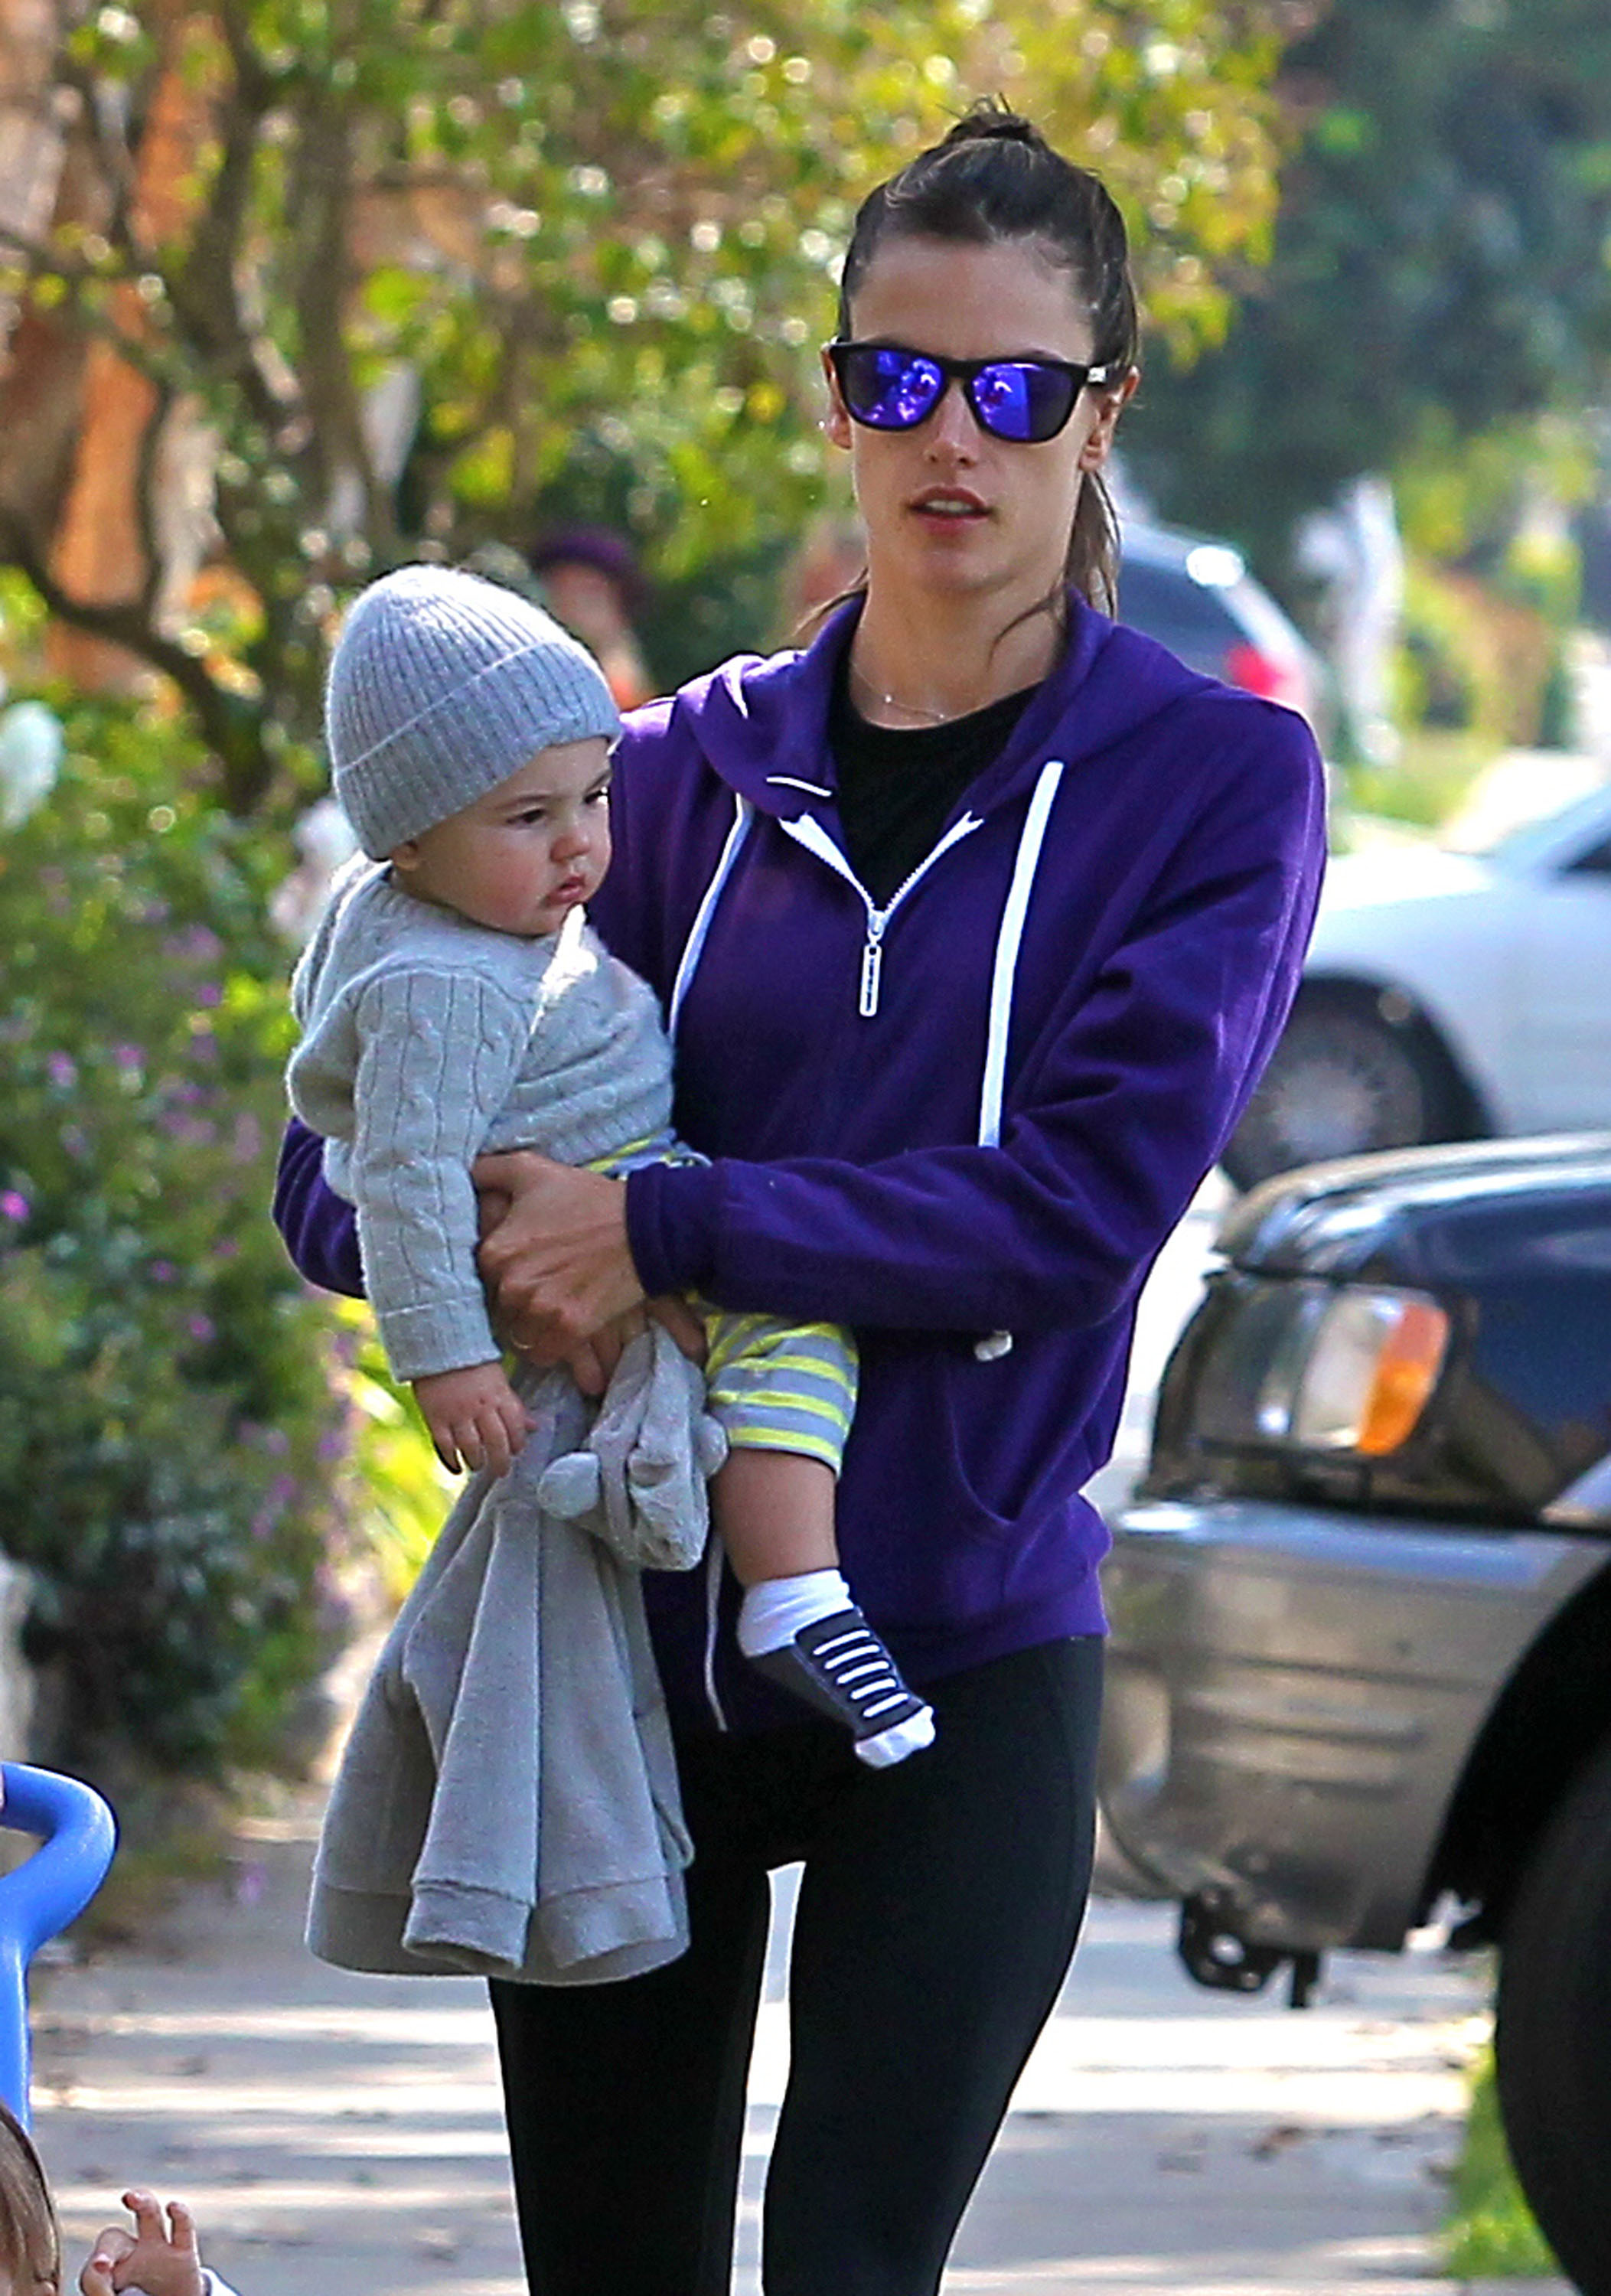 Alessandra Ambrosio wore purple shades as she carried baby boy Noah.